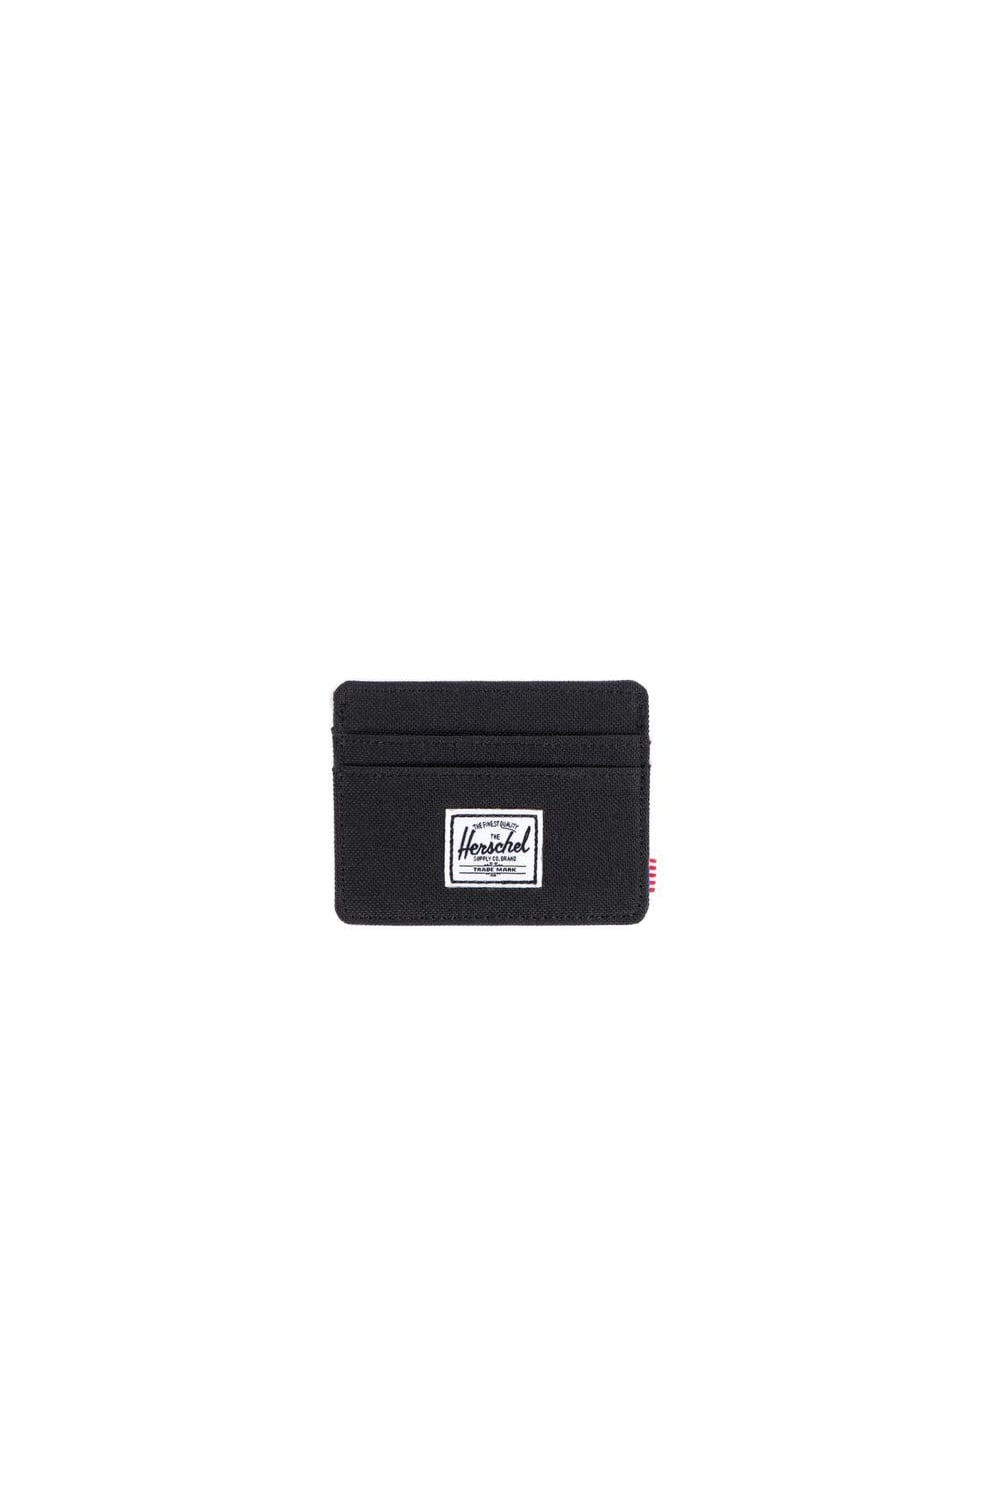 34f2ada94403 Herschel Supply Co. Charlie RFID Wallet (Black)